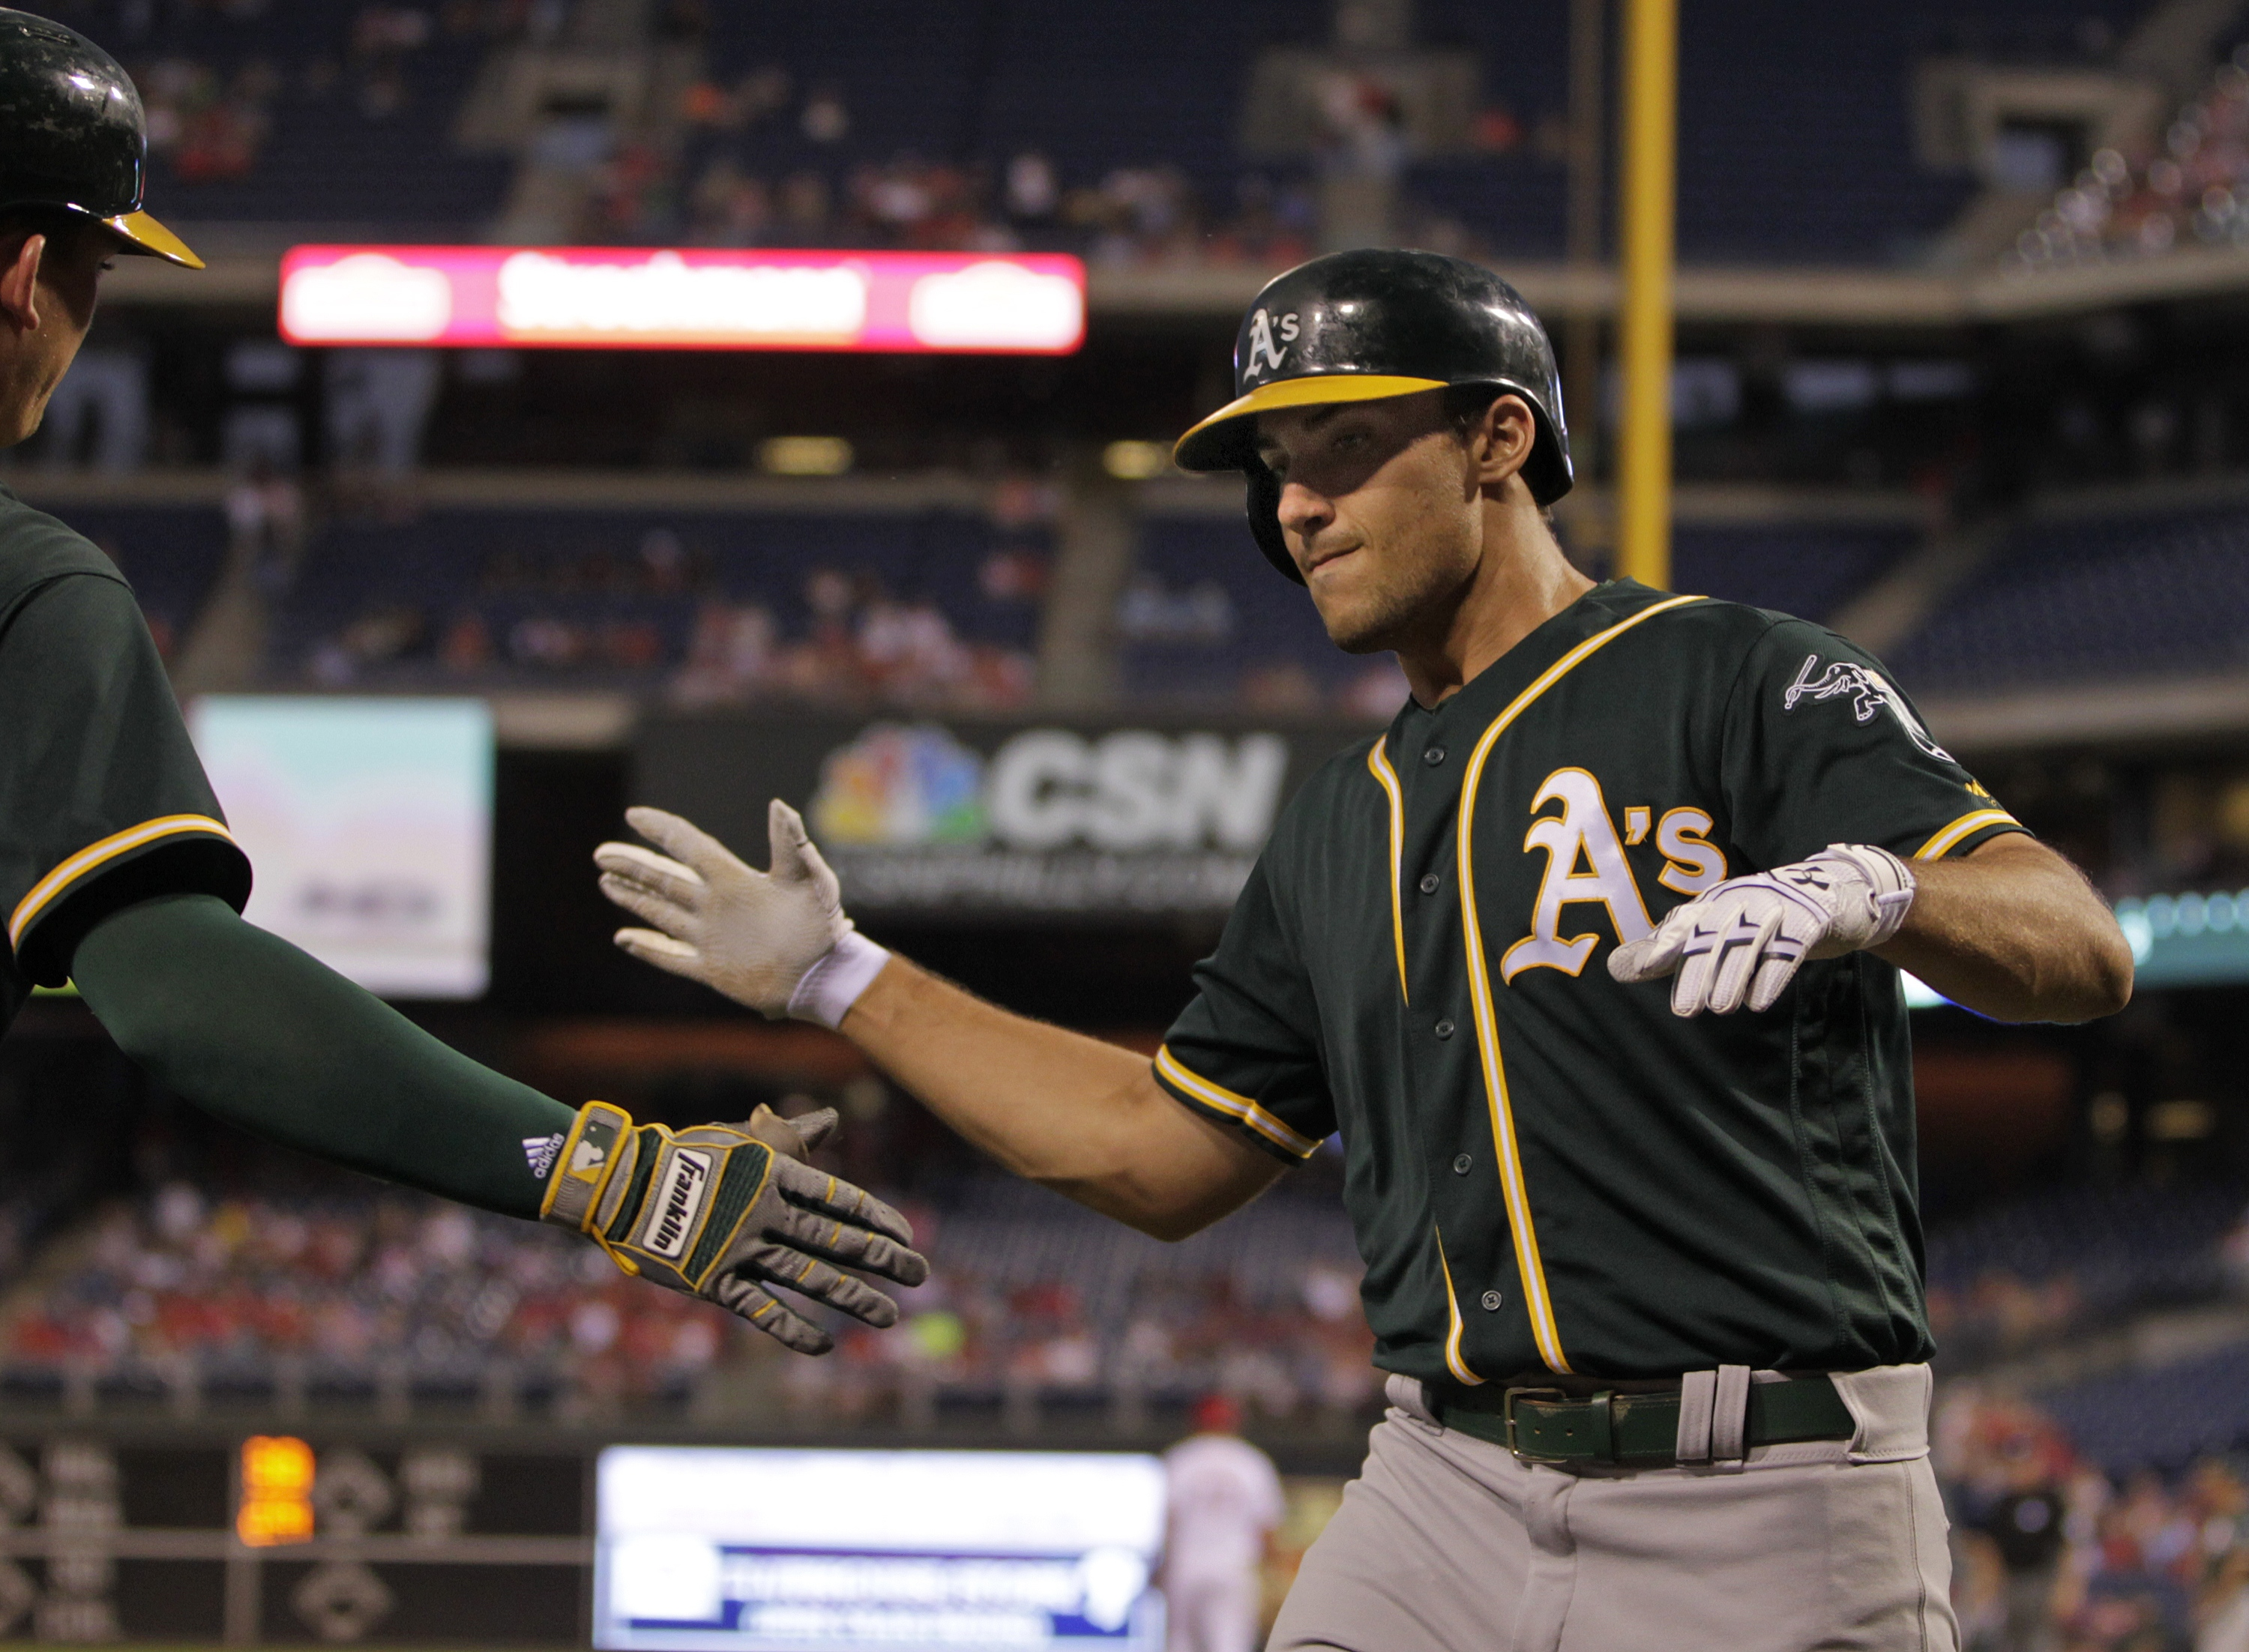 A's rookie Matt Olson equals Giancarlo Stanton with remarkable home run feat